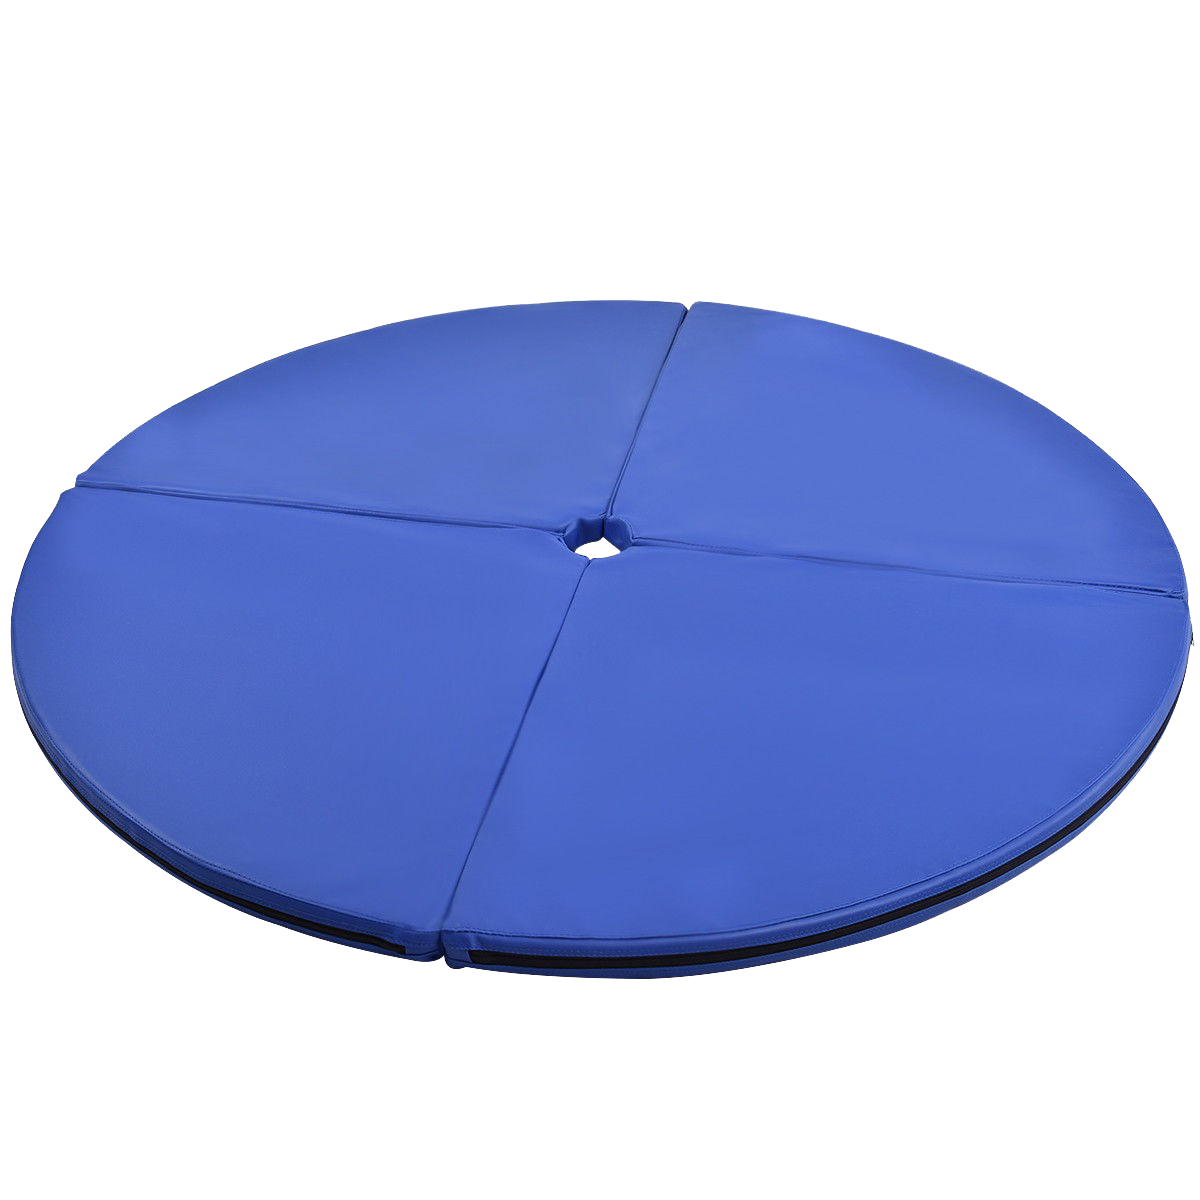 Blue Foldable Pole Dance Yoga Exercise Safety Cushion Mat Uplift Active